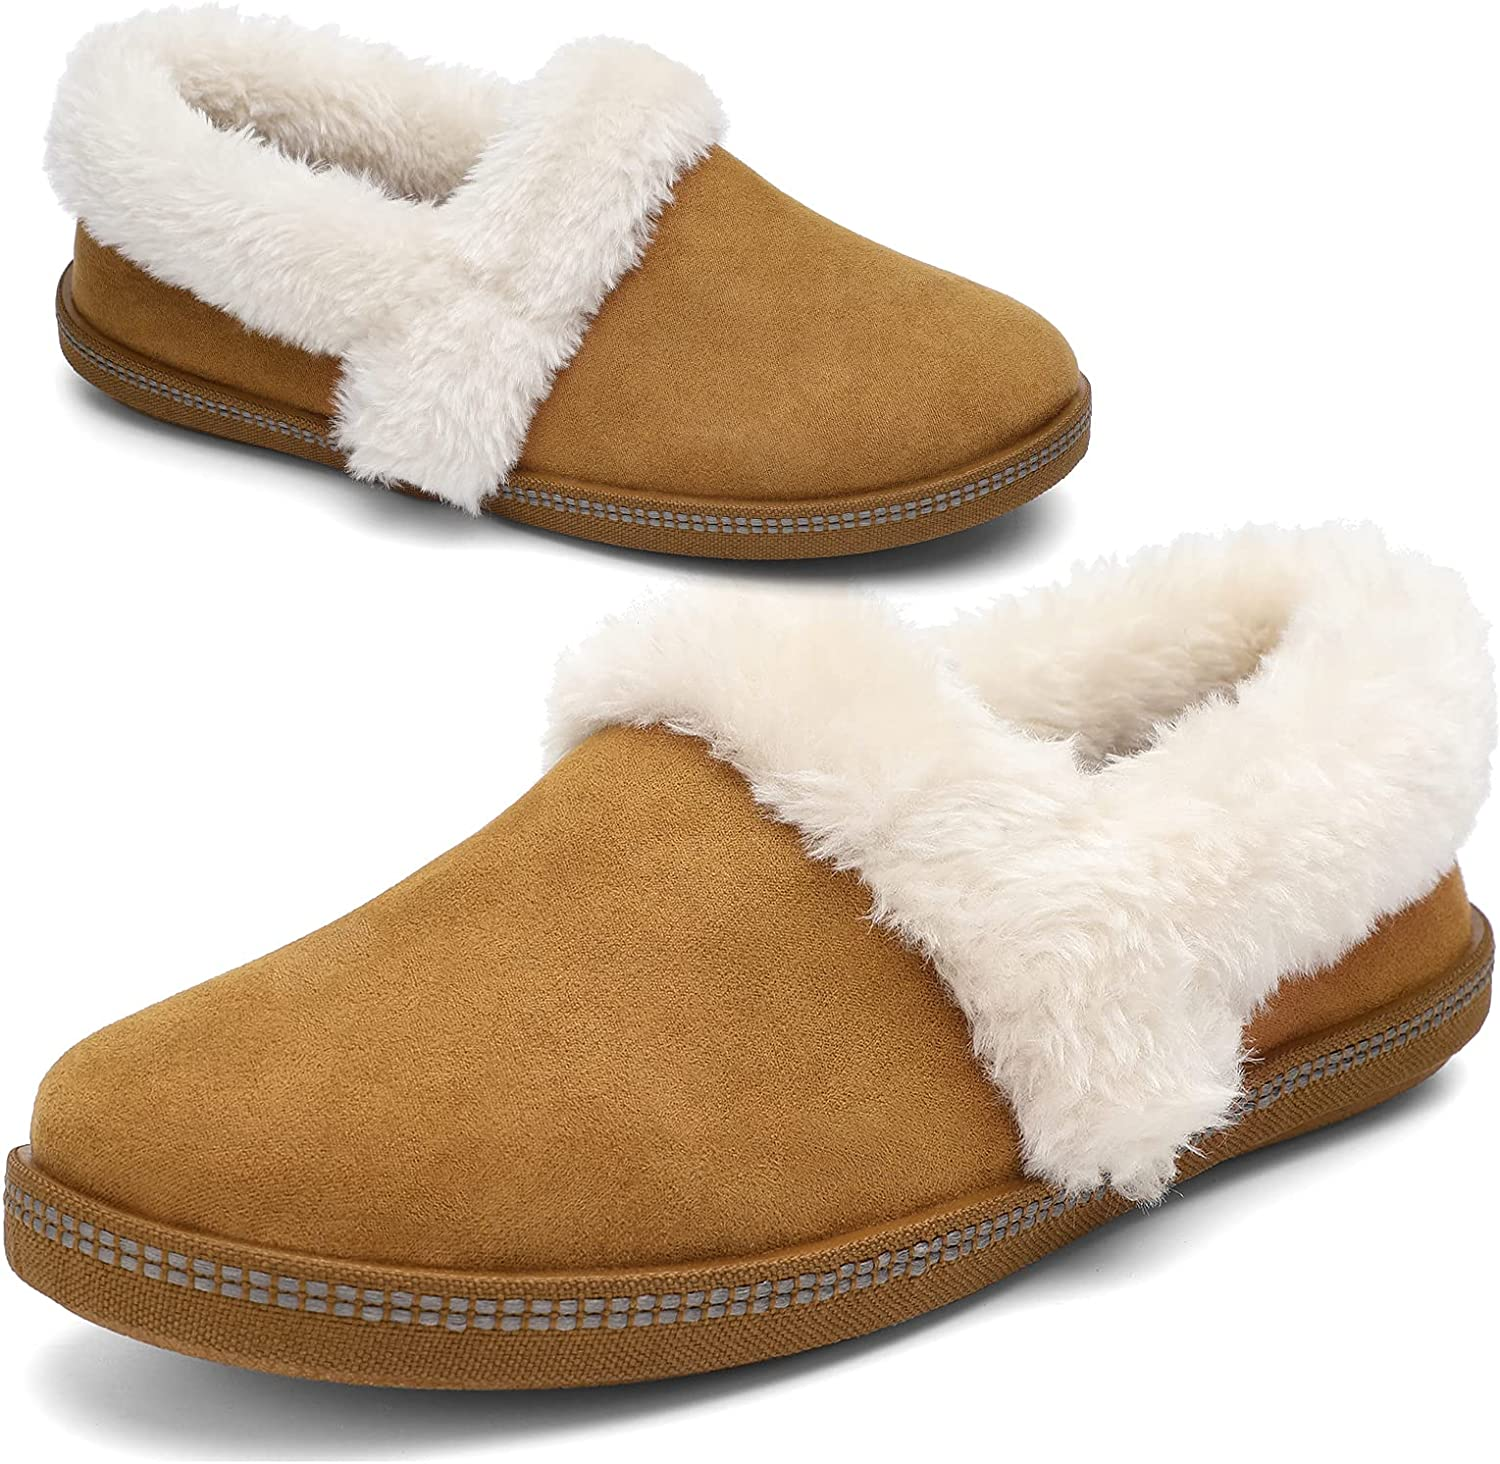 STQ Womens Fuzzy Slippers Indoor Outdoor Challenge the lowest price of Japan Seattle Mall Cozy Warm Foam Memory